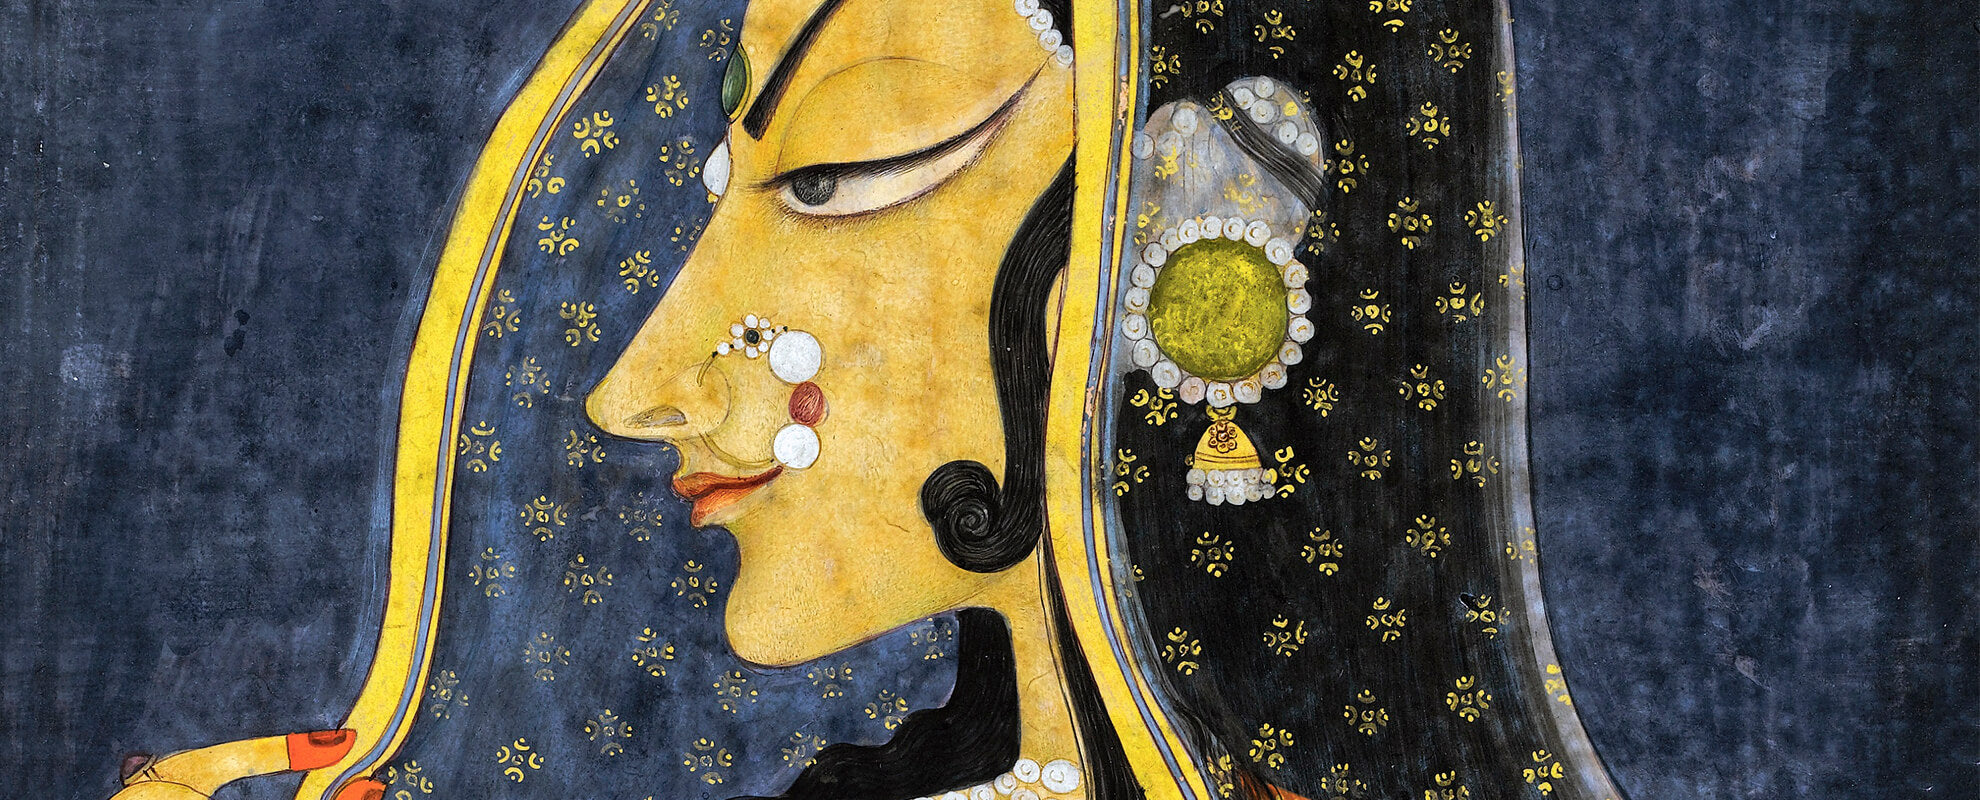 Indian Art — Hemen Mazumdar | Buy Posters, Frames, Canvas, Digital Art & Large Size Prints